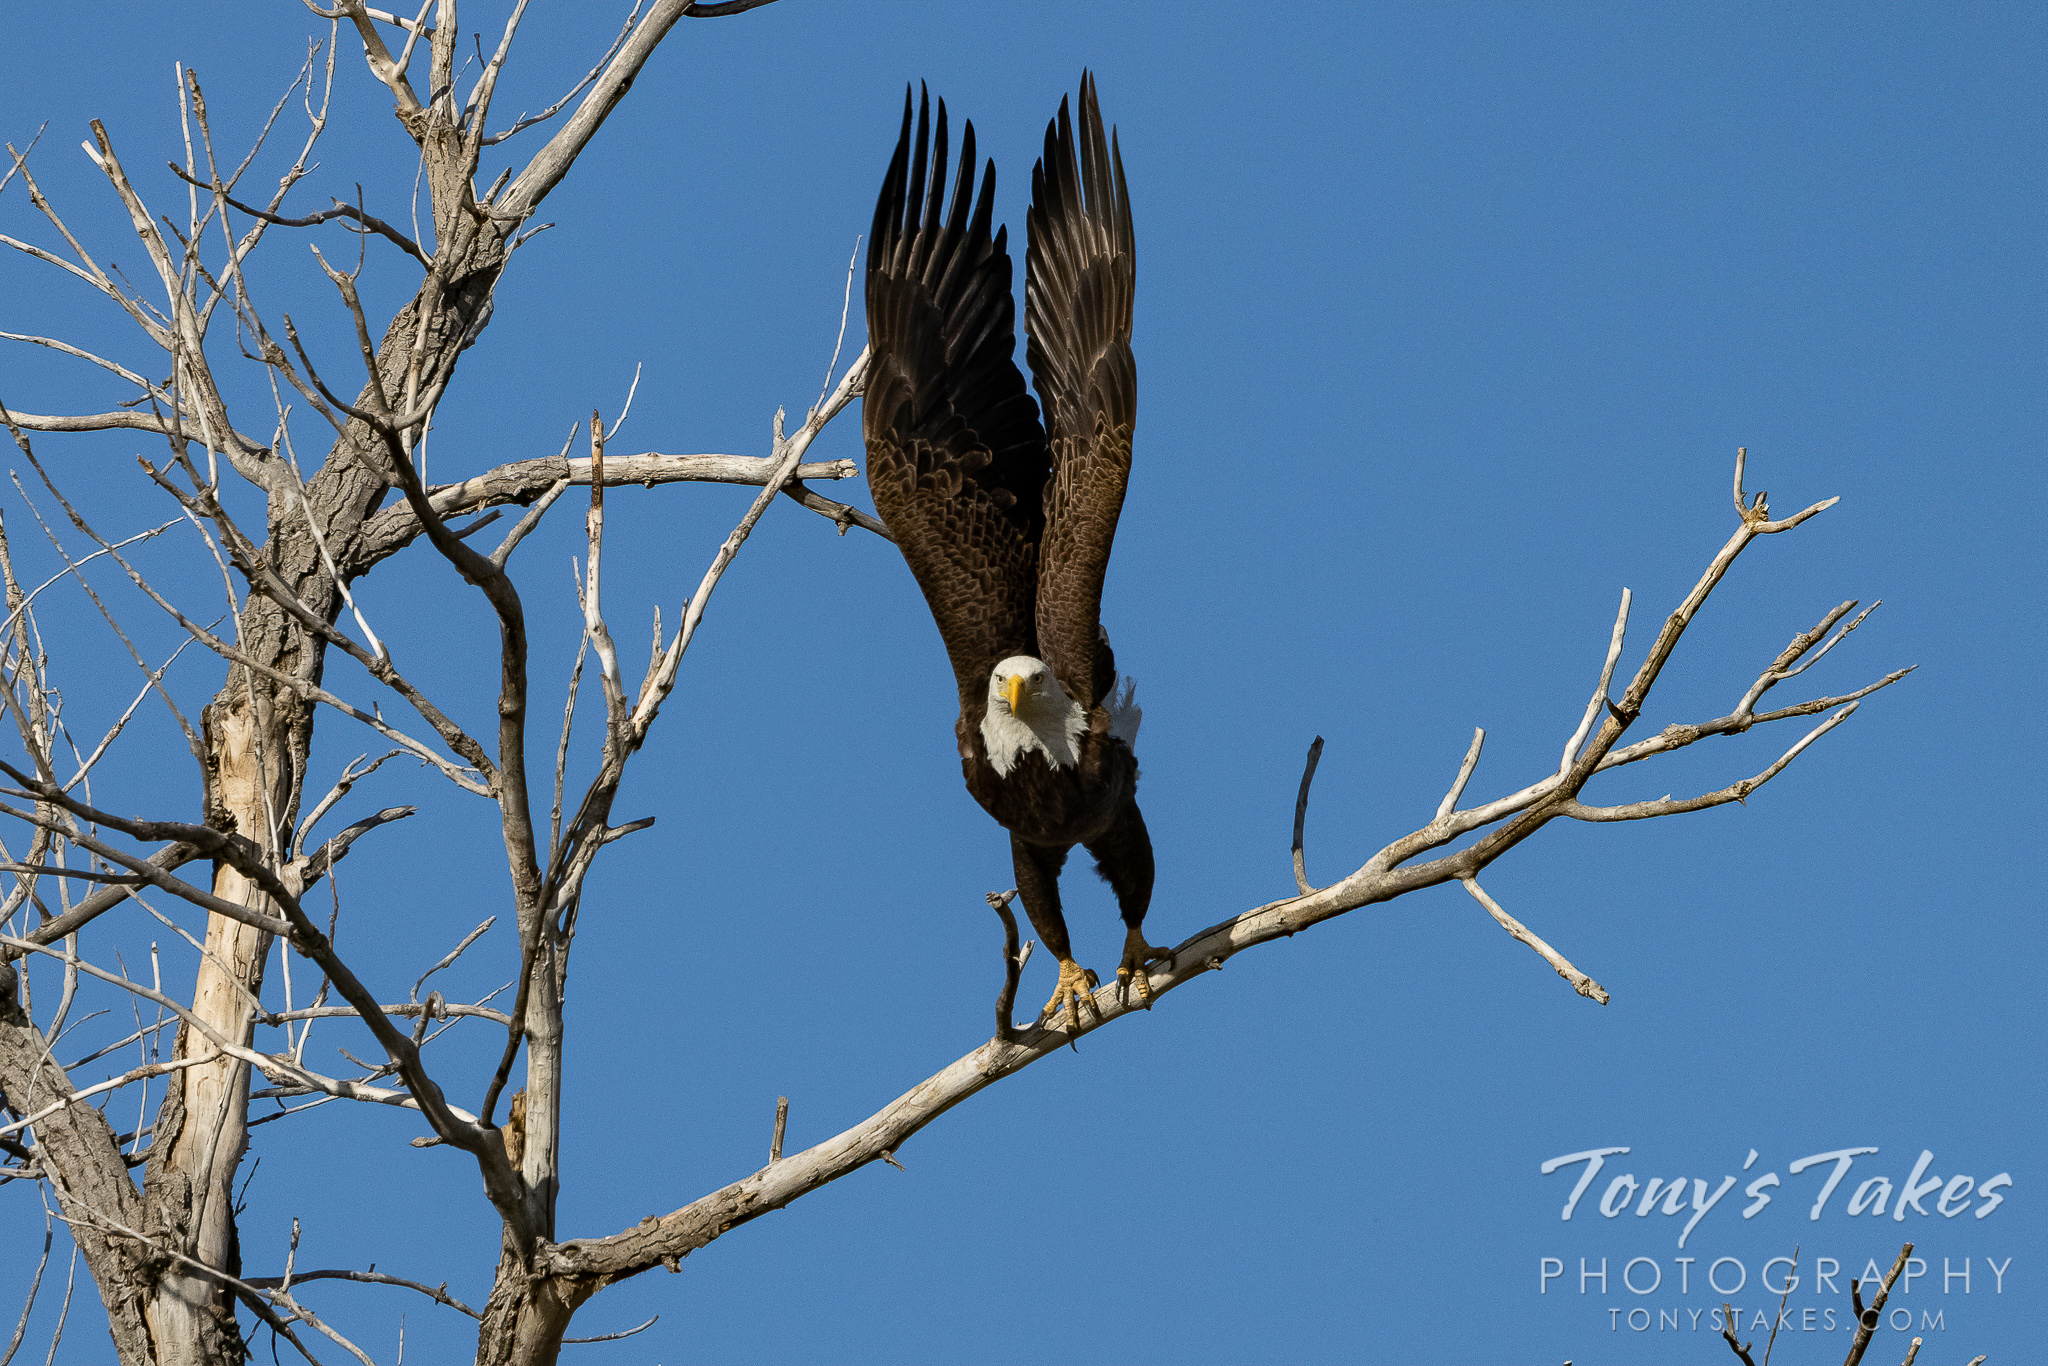 Lift 'em up and take flight, it's Freedom Friday!